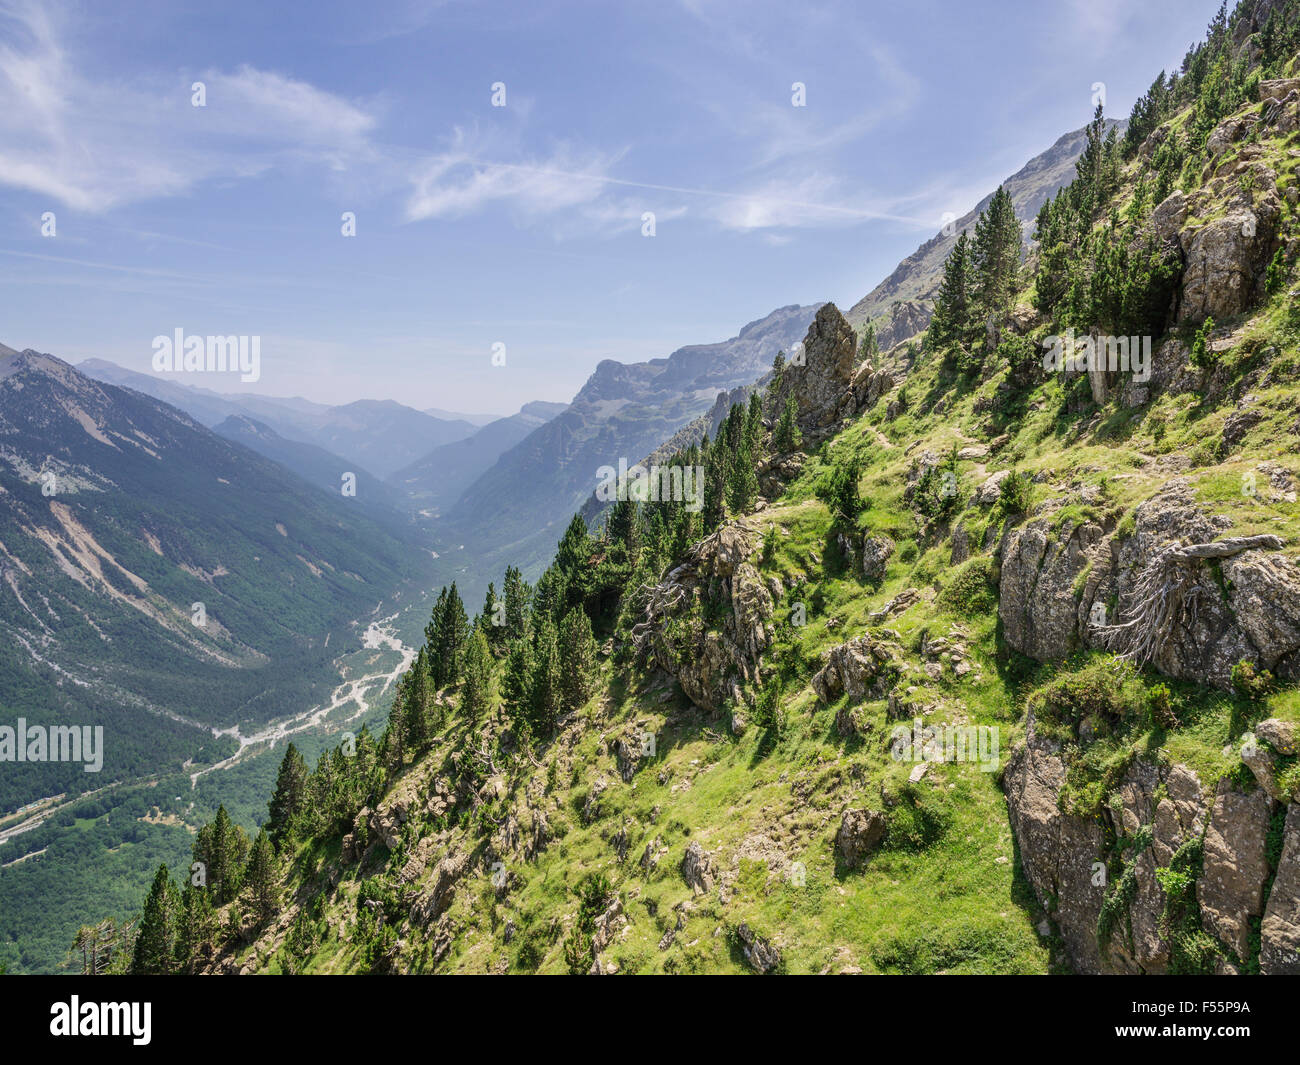 Hiking trail on Faja de la Tormosa, Valle de Pineto, Aragon, Spain Stock Photo